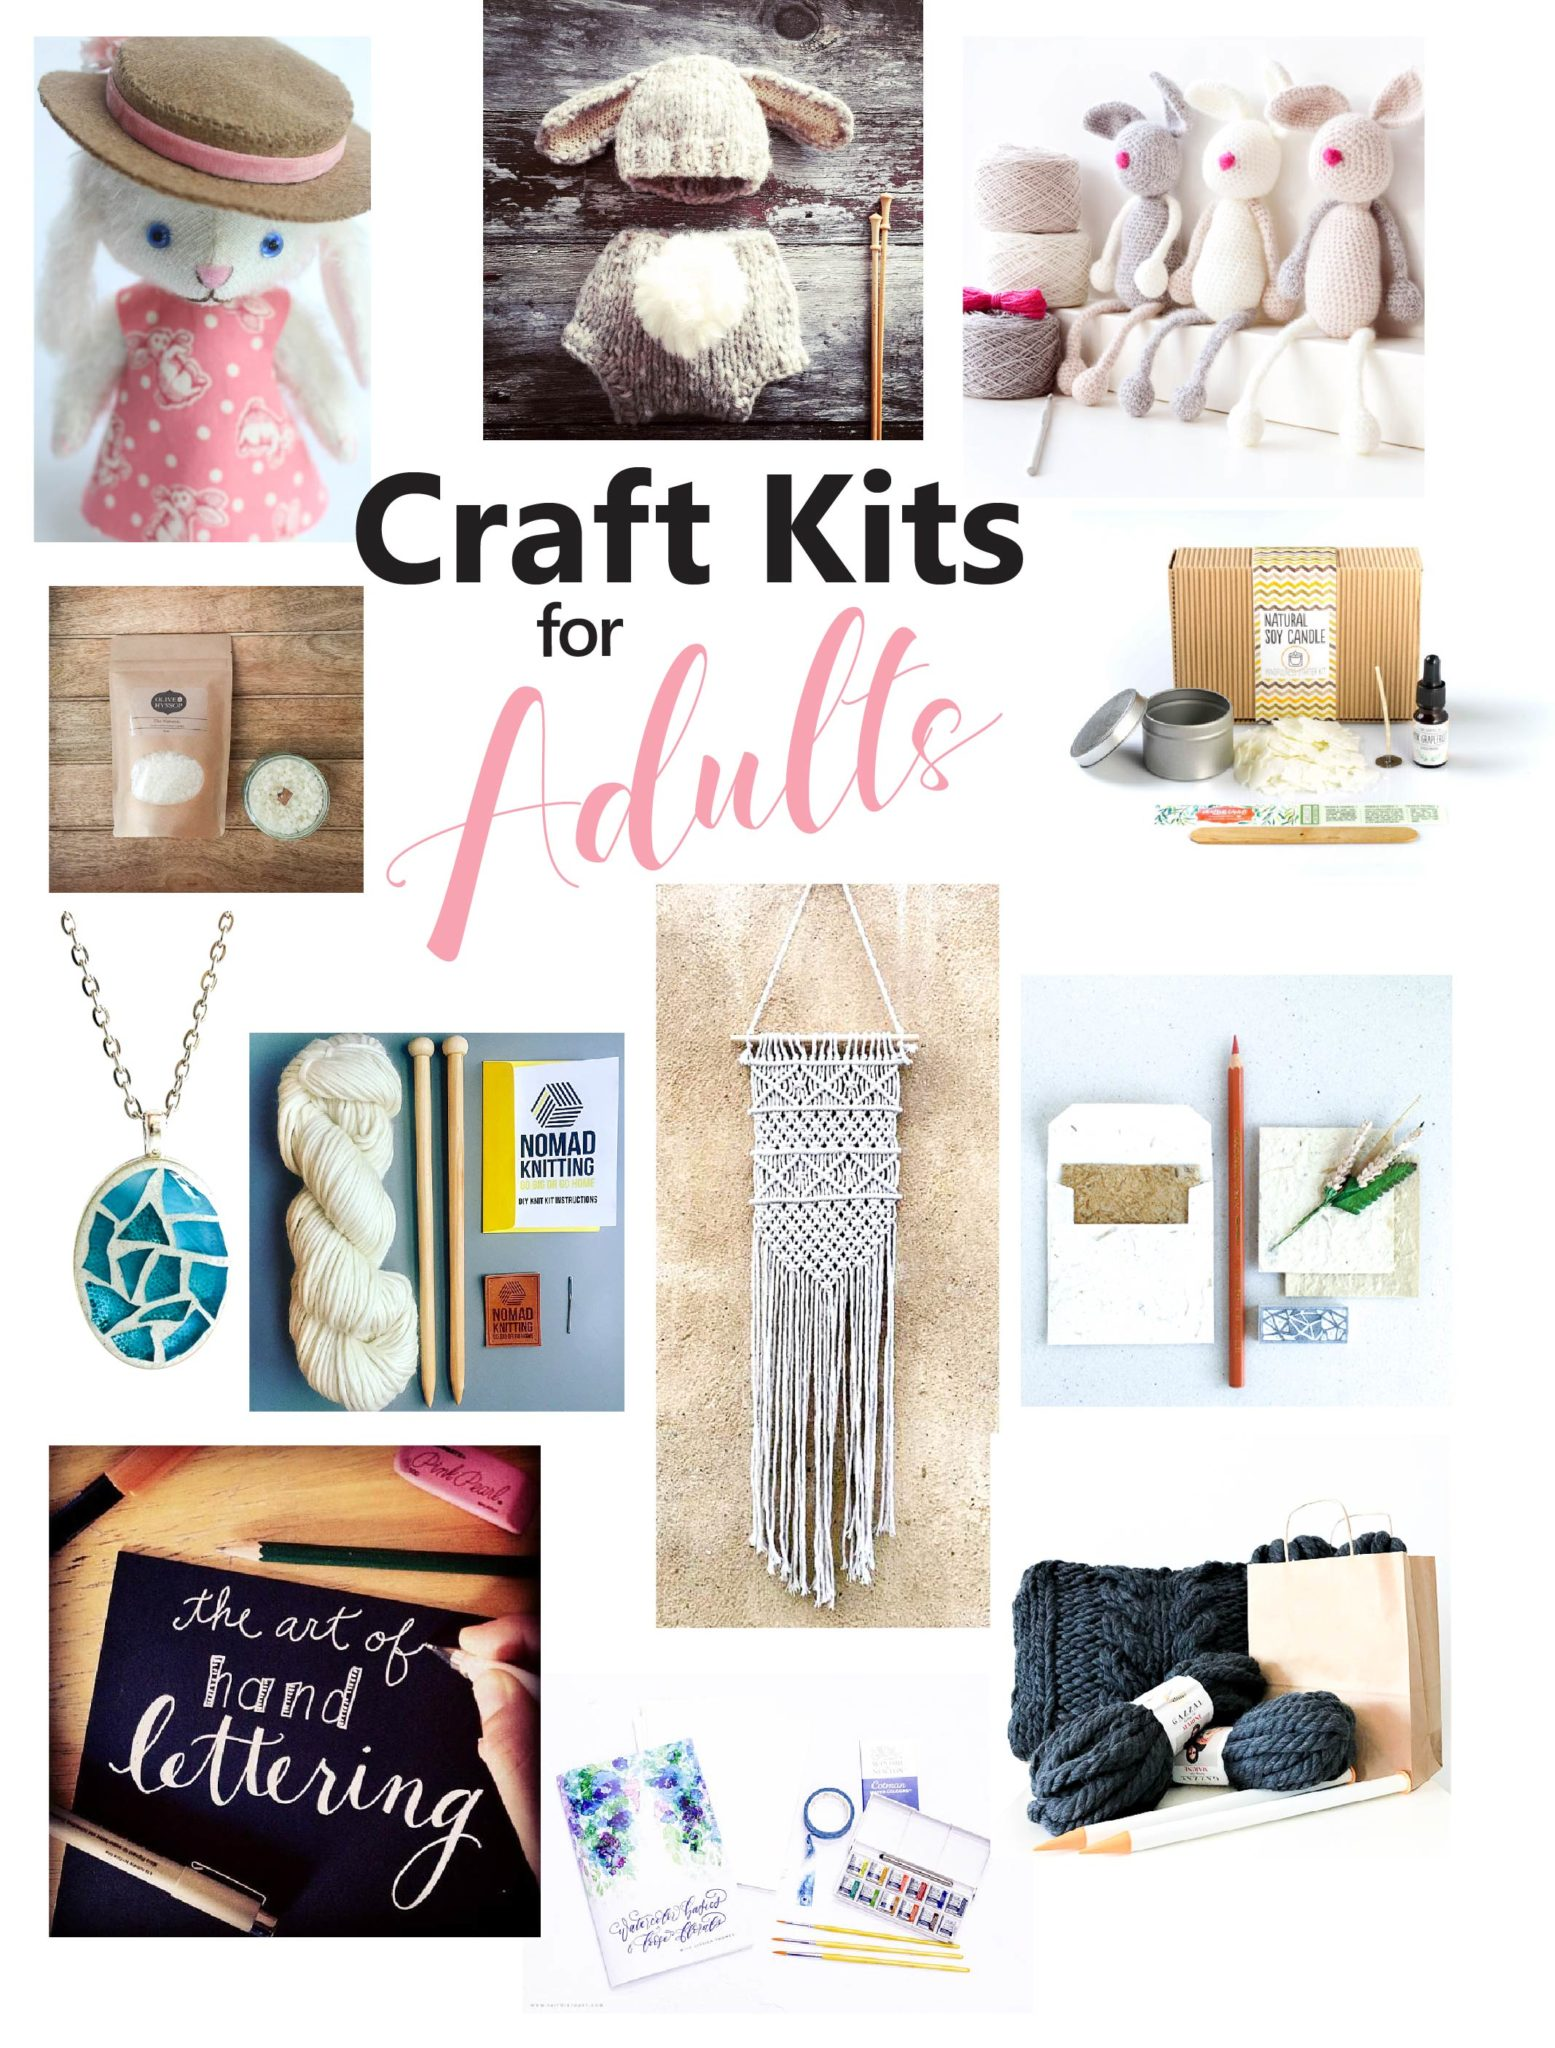 The Best Craft Kits For Adults Sustain My Craft Habit